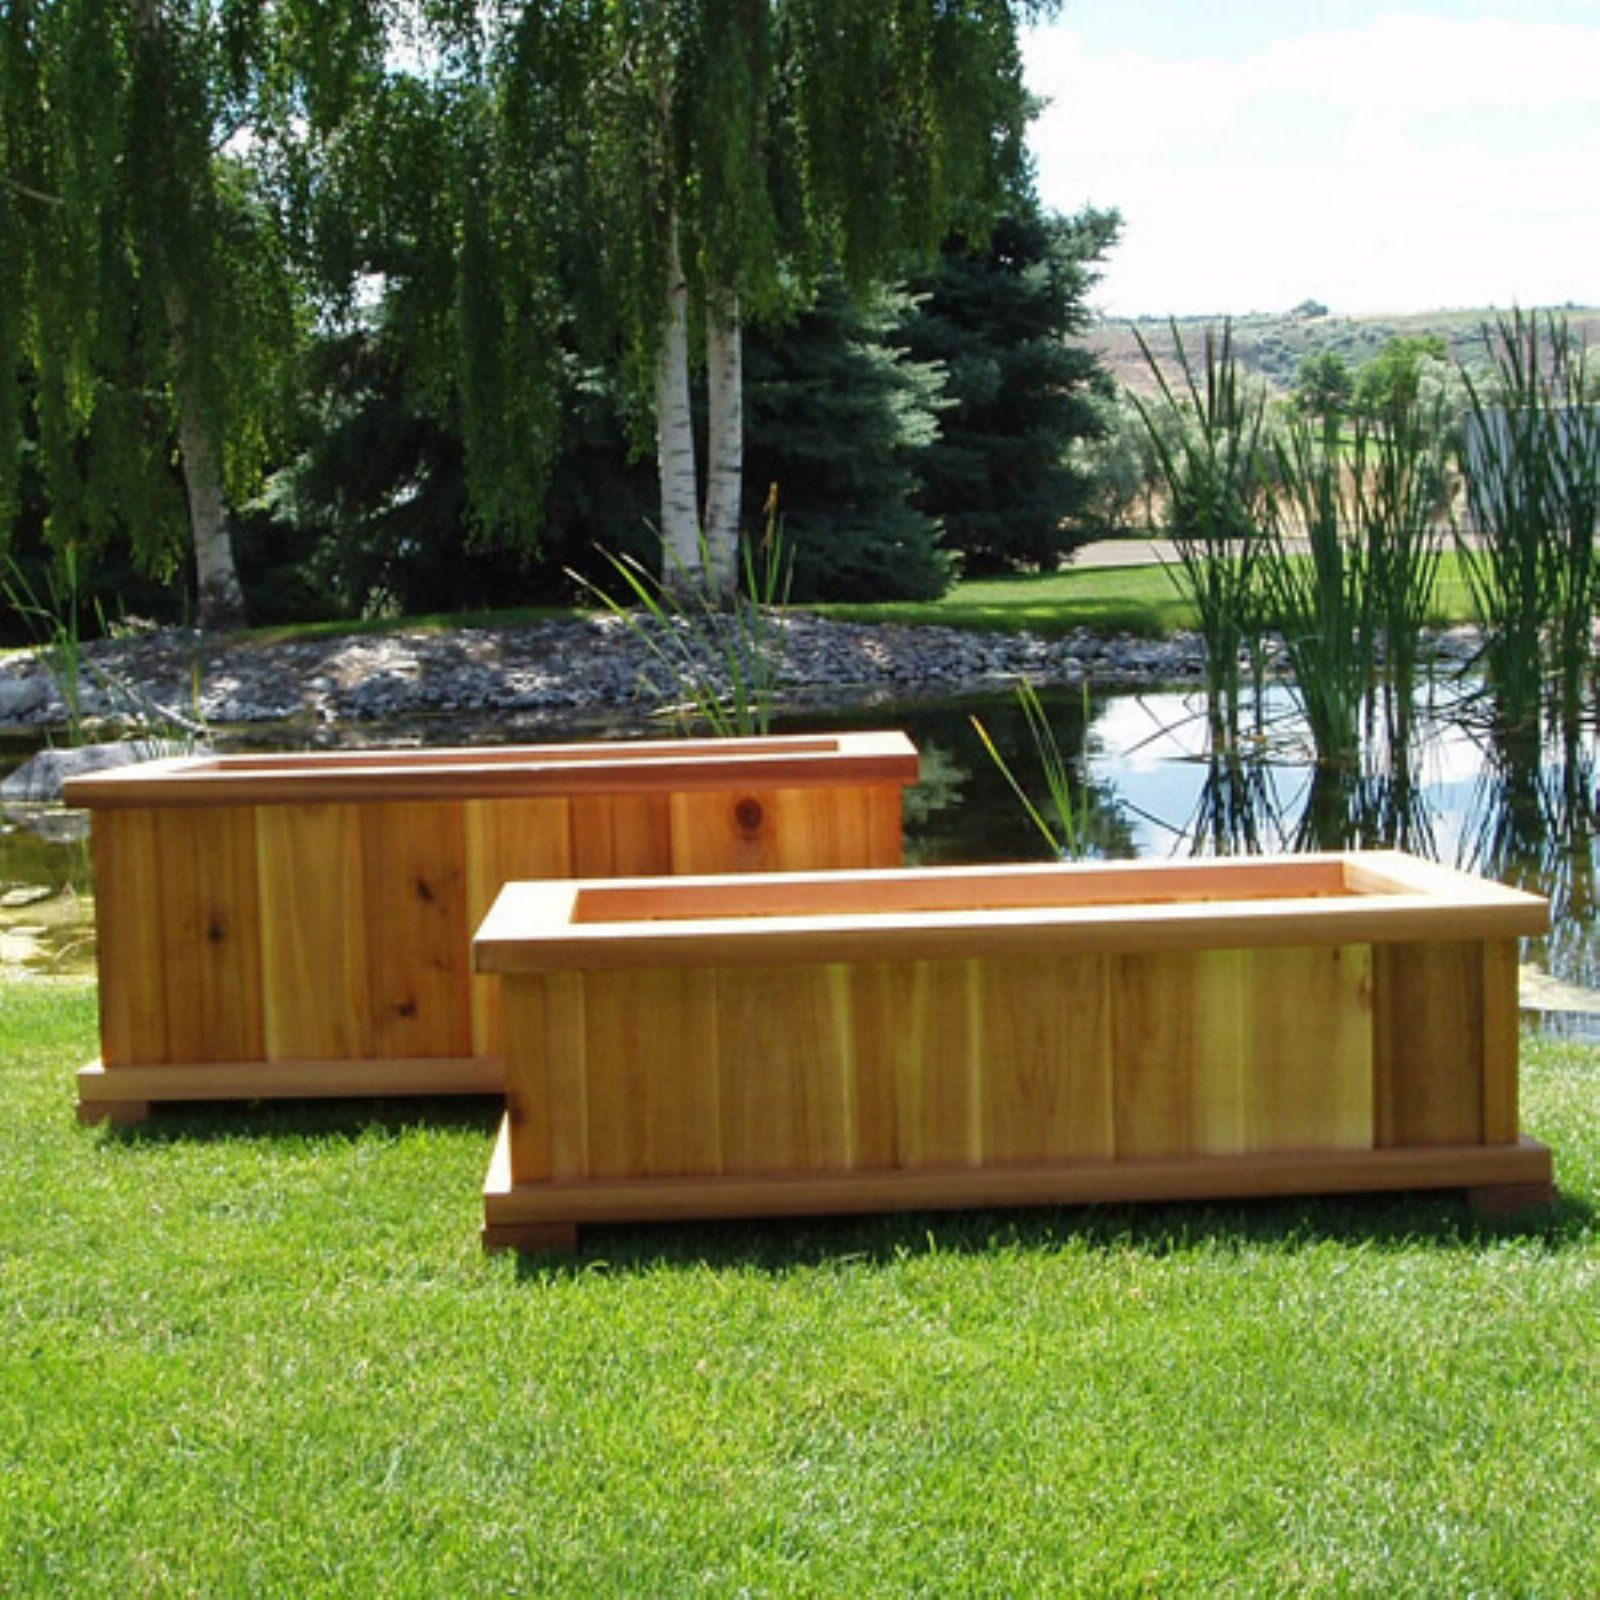 Wooden Garden Planters Ideas amish pine outdoor country bench planter with plastic pot Images Of Planter Box Genie Backyard And Patio Wallpaper Wooden Planter Boxeslarge